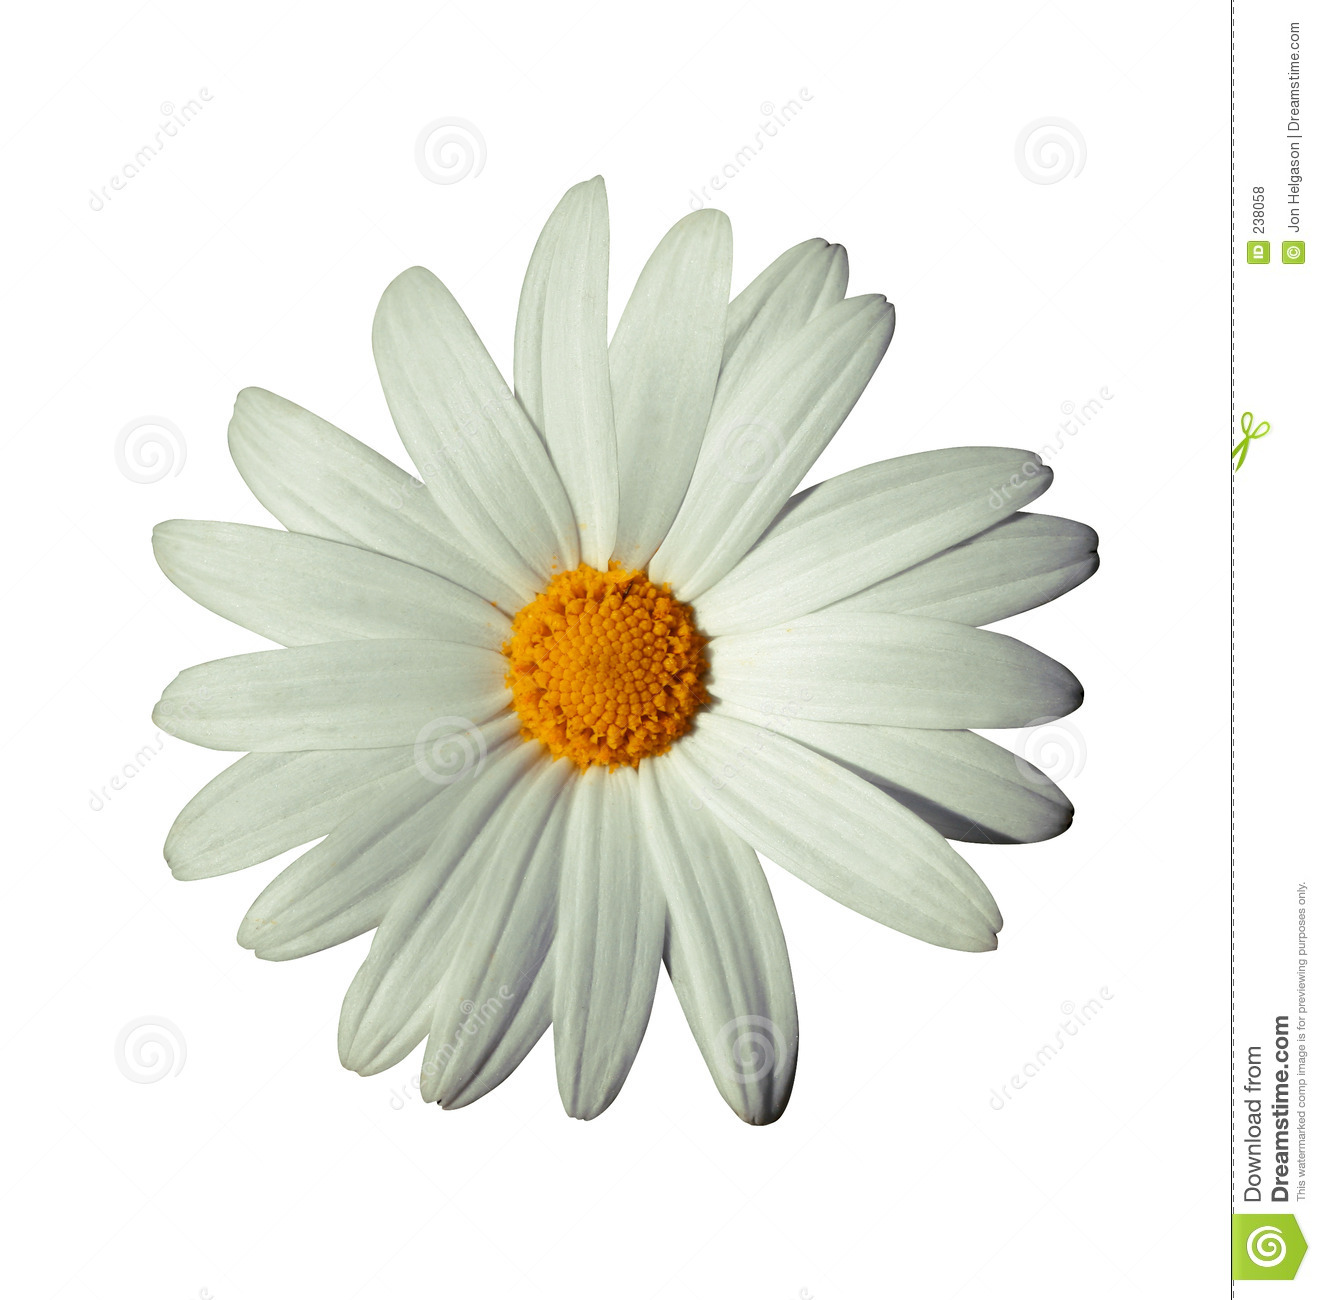 White flower stock photo image of flowershop seeds design 238058 white flower mightylinksfo